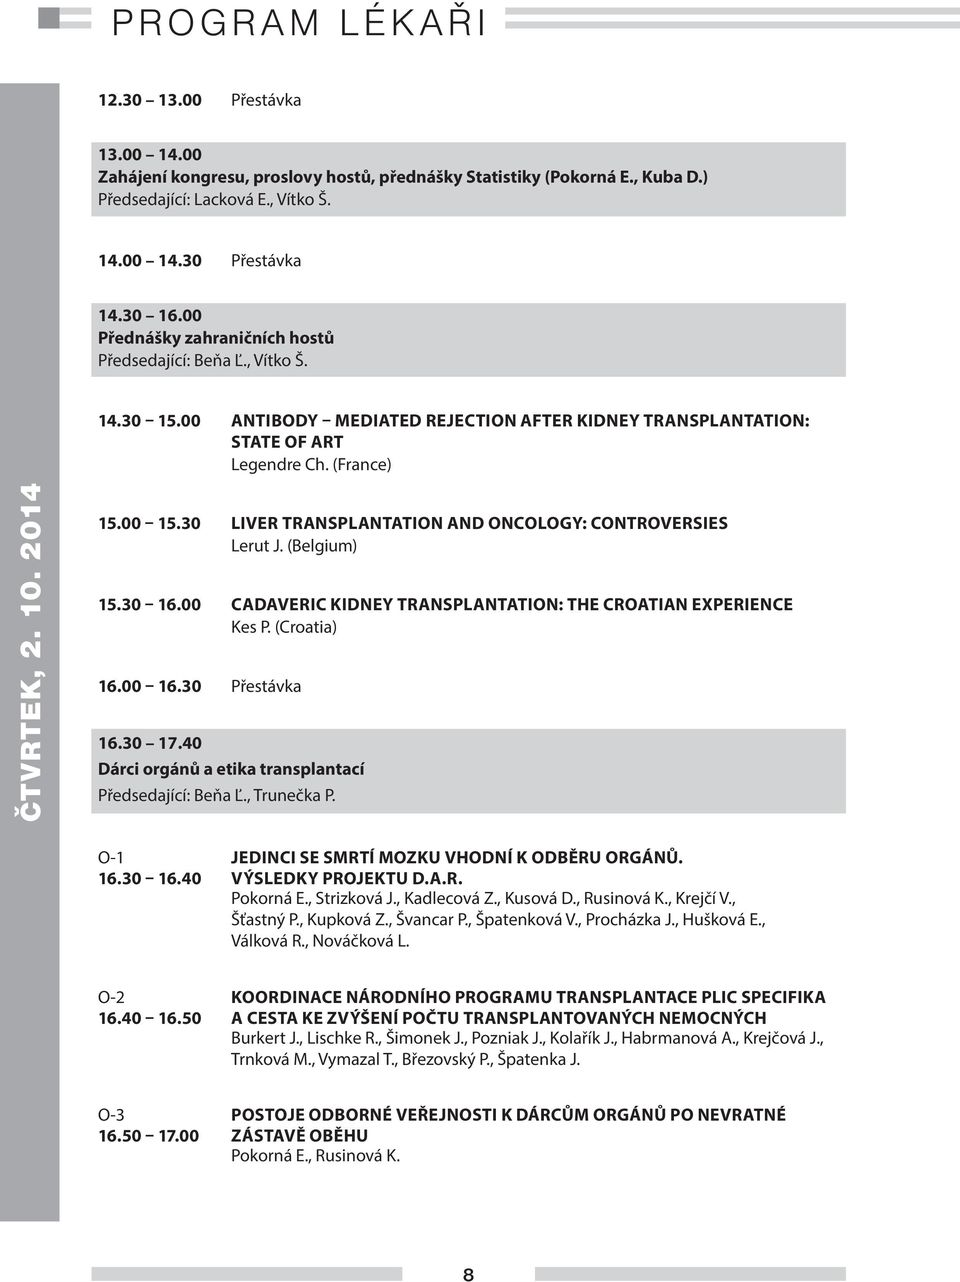 30 LIVER TRANSPLANTATION AND ONCOLOGY: CONTROVERSIES Lerut J. (Belgium) 15.30 16.00 CADAVERIC KIDNEY TRANSPLANTATION: THE CROATIAN EXPERIENCE Kes P. (Croatia) 16.00 16.30 Přestávka 16.30 17.